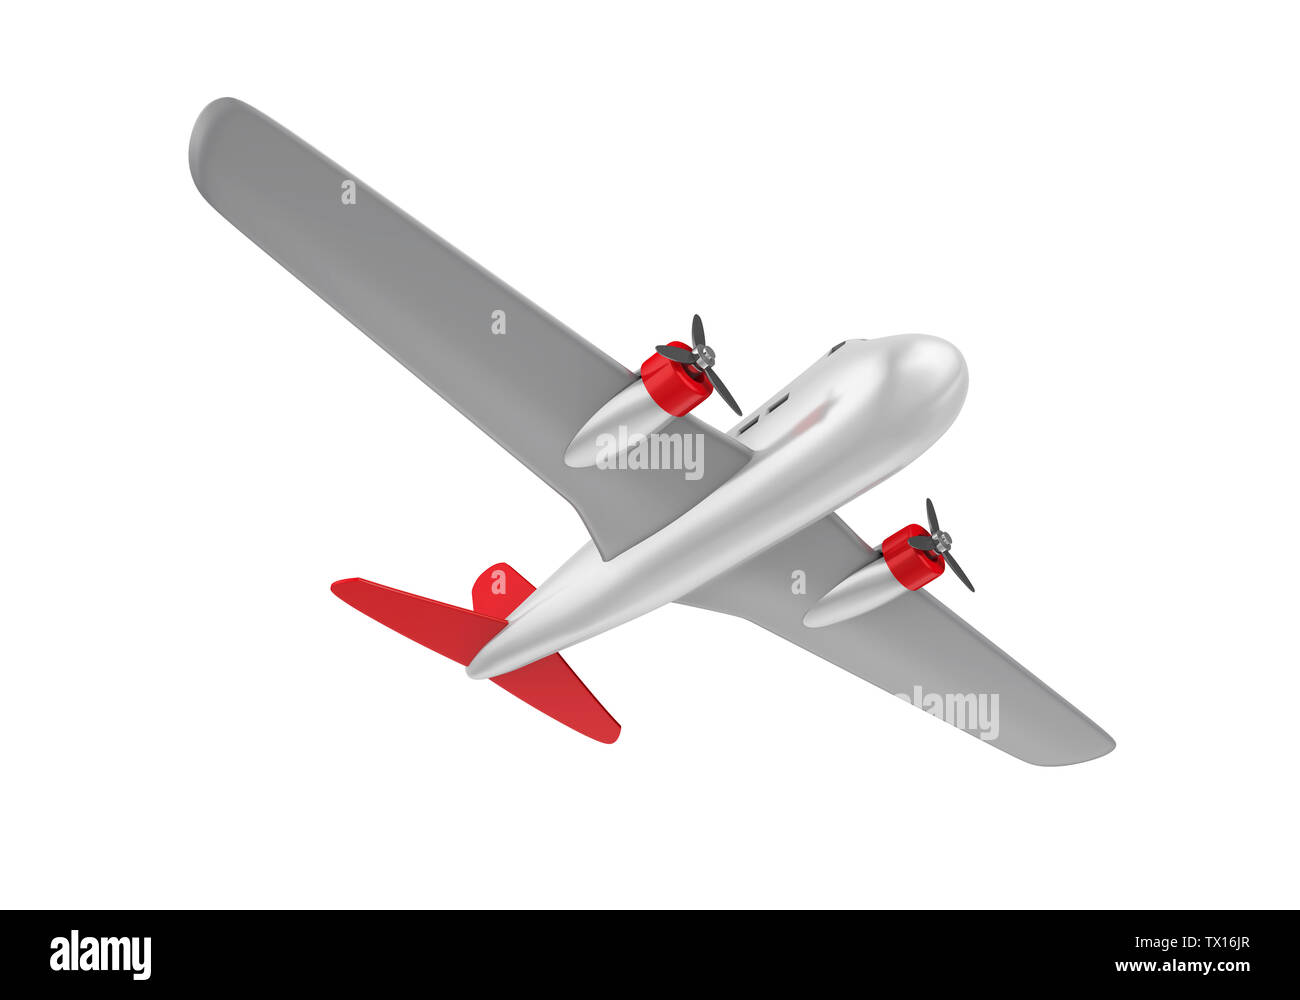 Airplane Toy Isolated - Stock Image